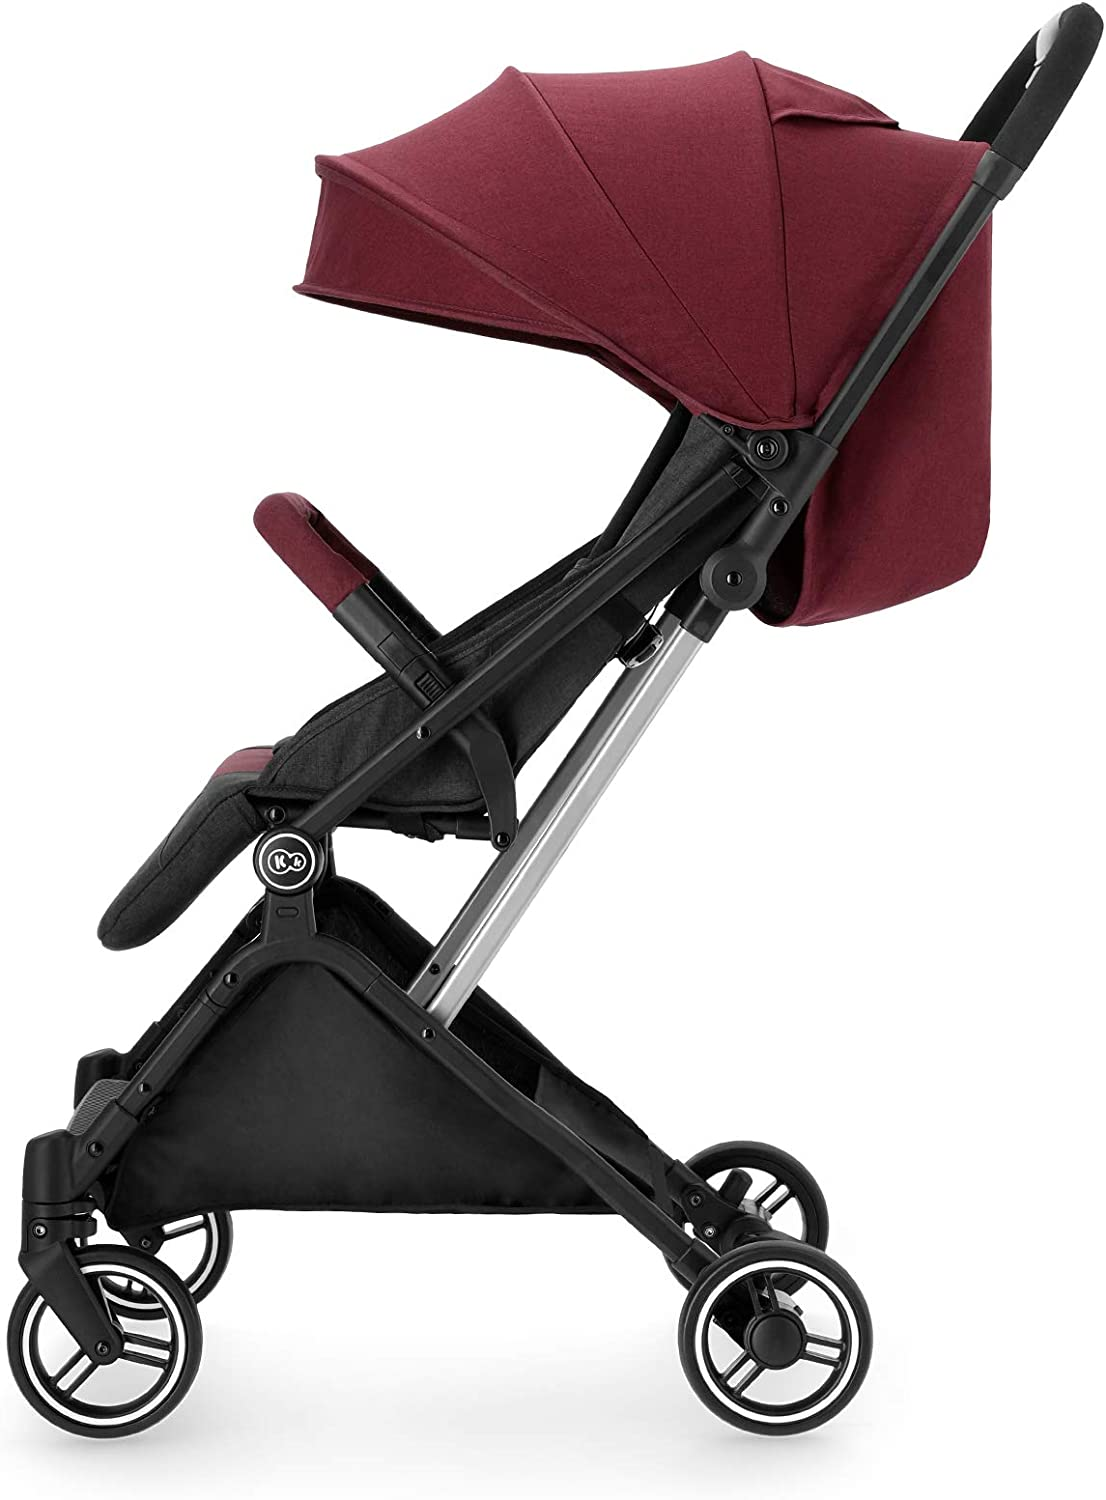 0-15 kg Travel Buggy Footmuff with Accessories Kinderkraft Lightweight Stroller INDY Ajustable Backrest Rain Cover from Birth to 3.5 Years Baby Pushchair Burgundy Easy Folding and Transport